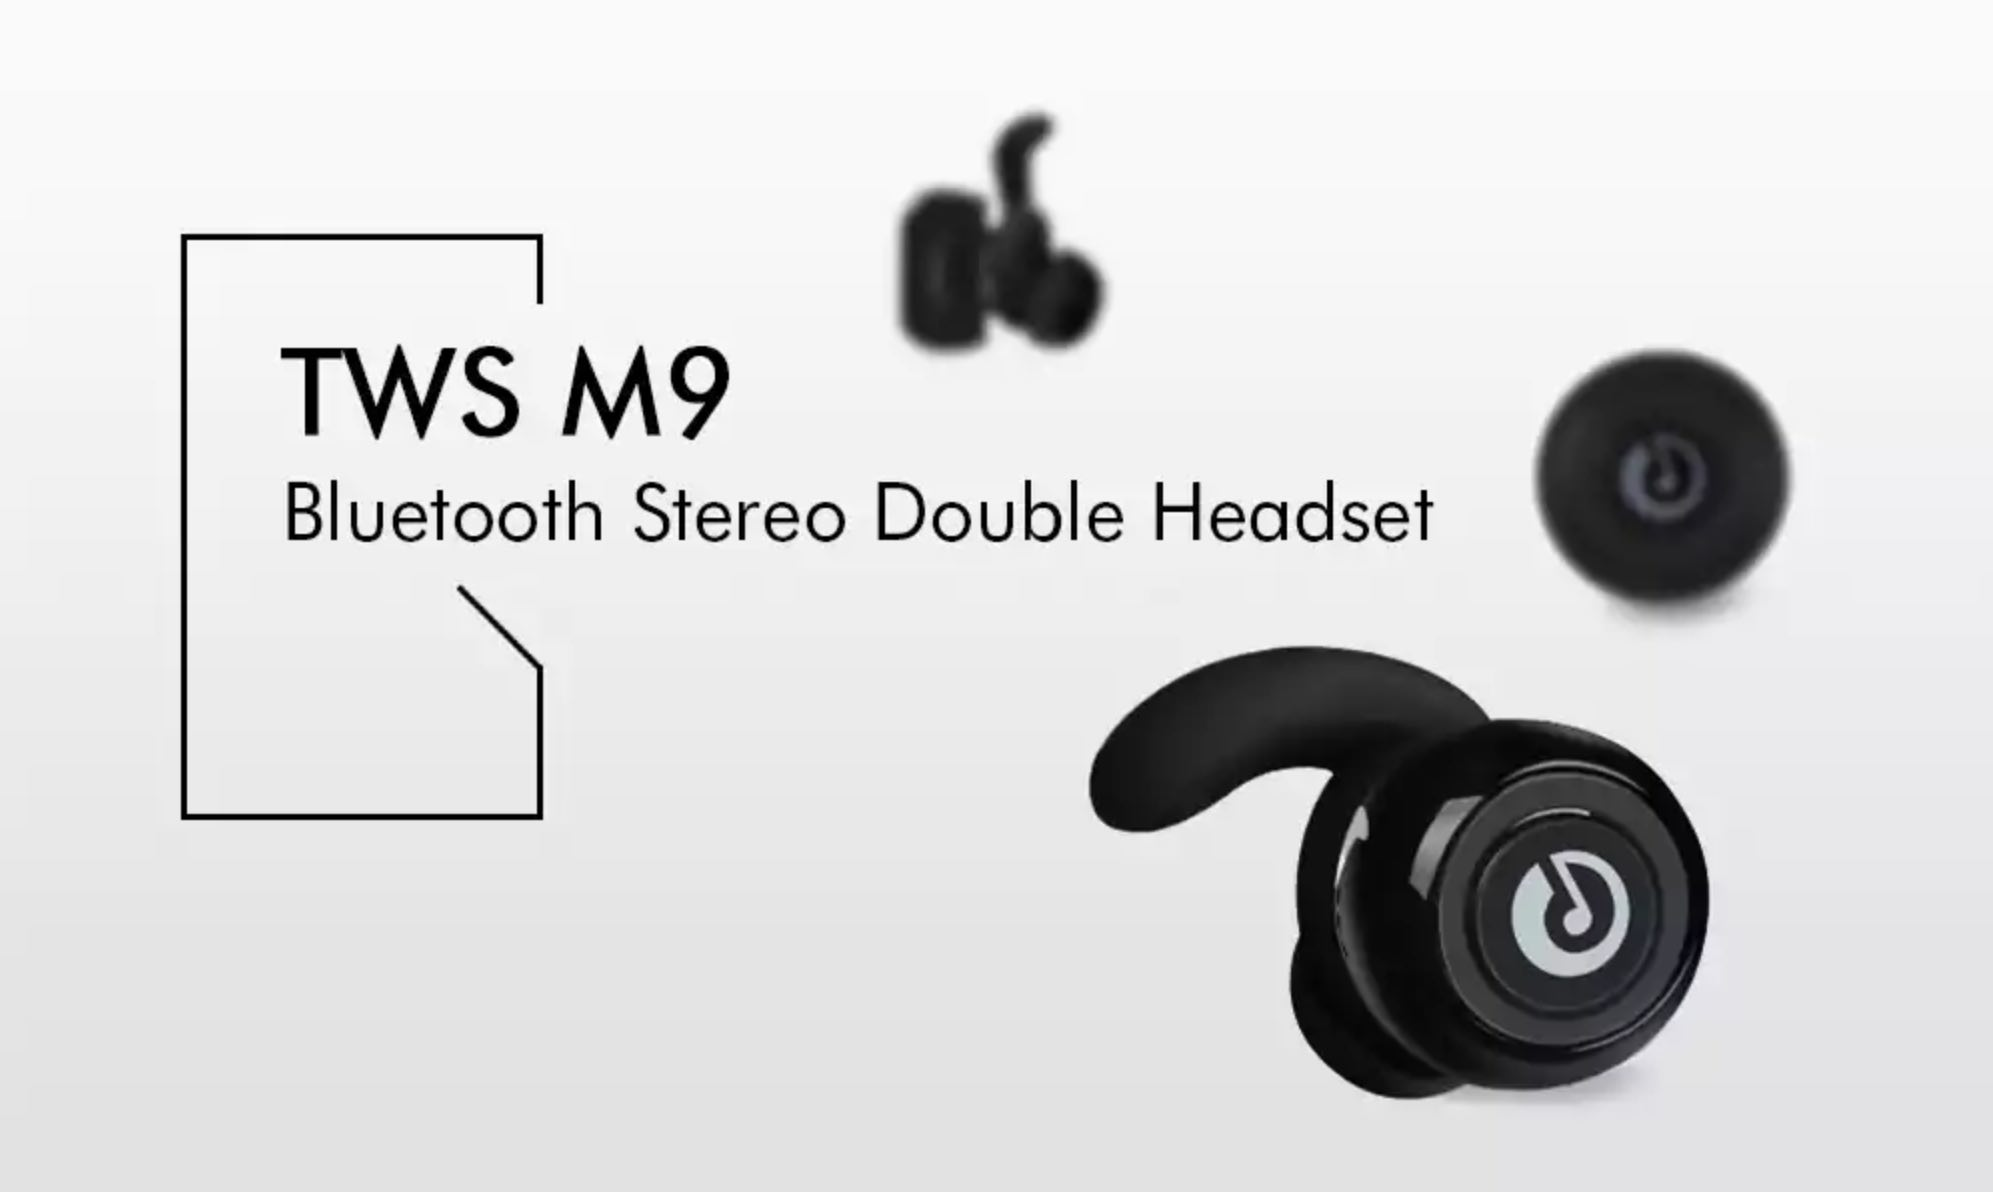 GearBest: TWS M9 Bluetooth Stereo Headset